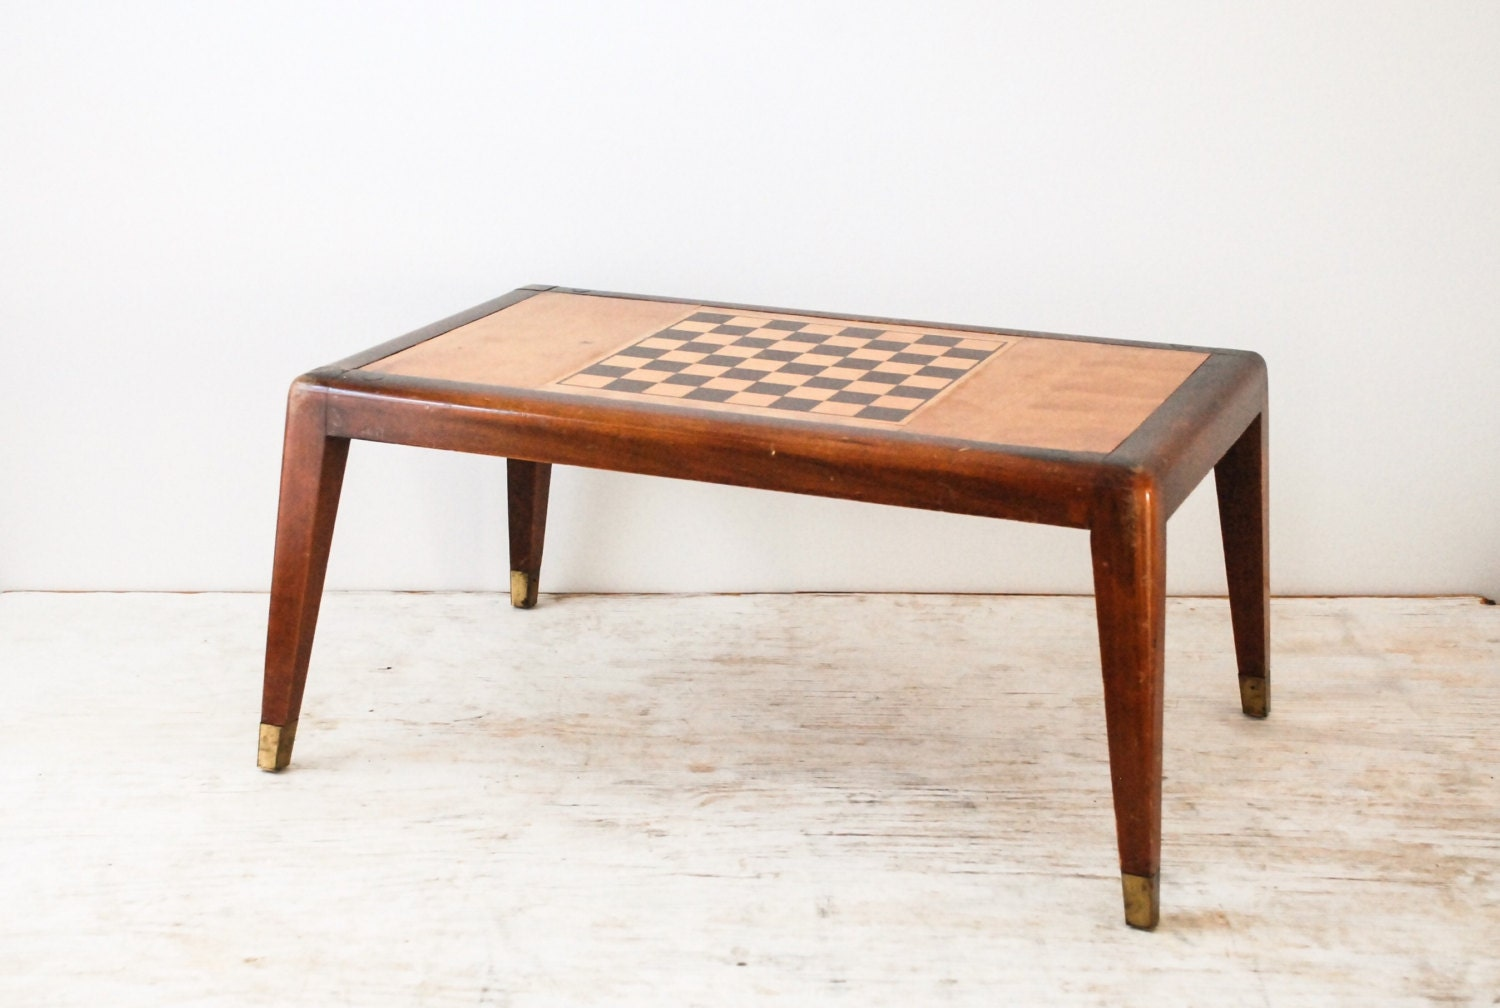 Chess table game table chess board wooden game table by littlecows - Wooden chess tables ...